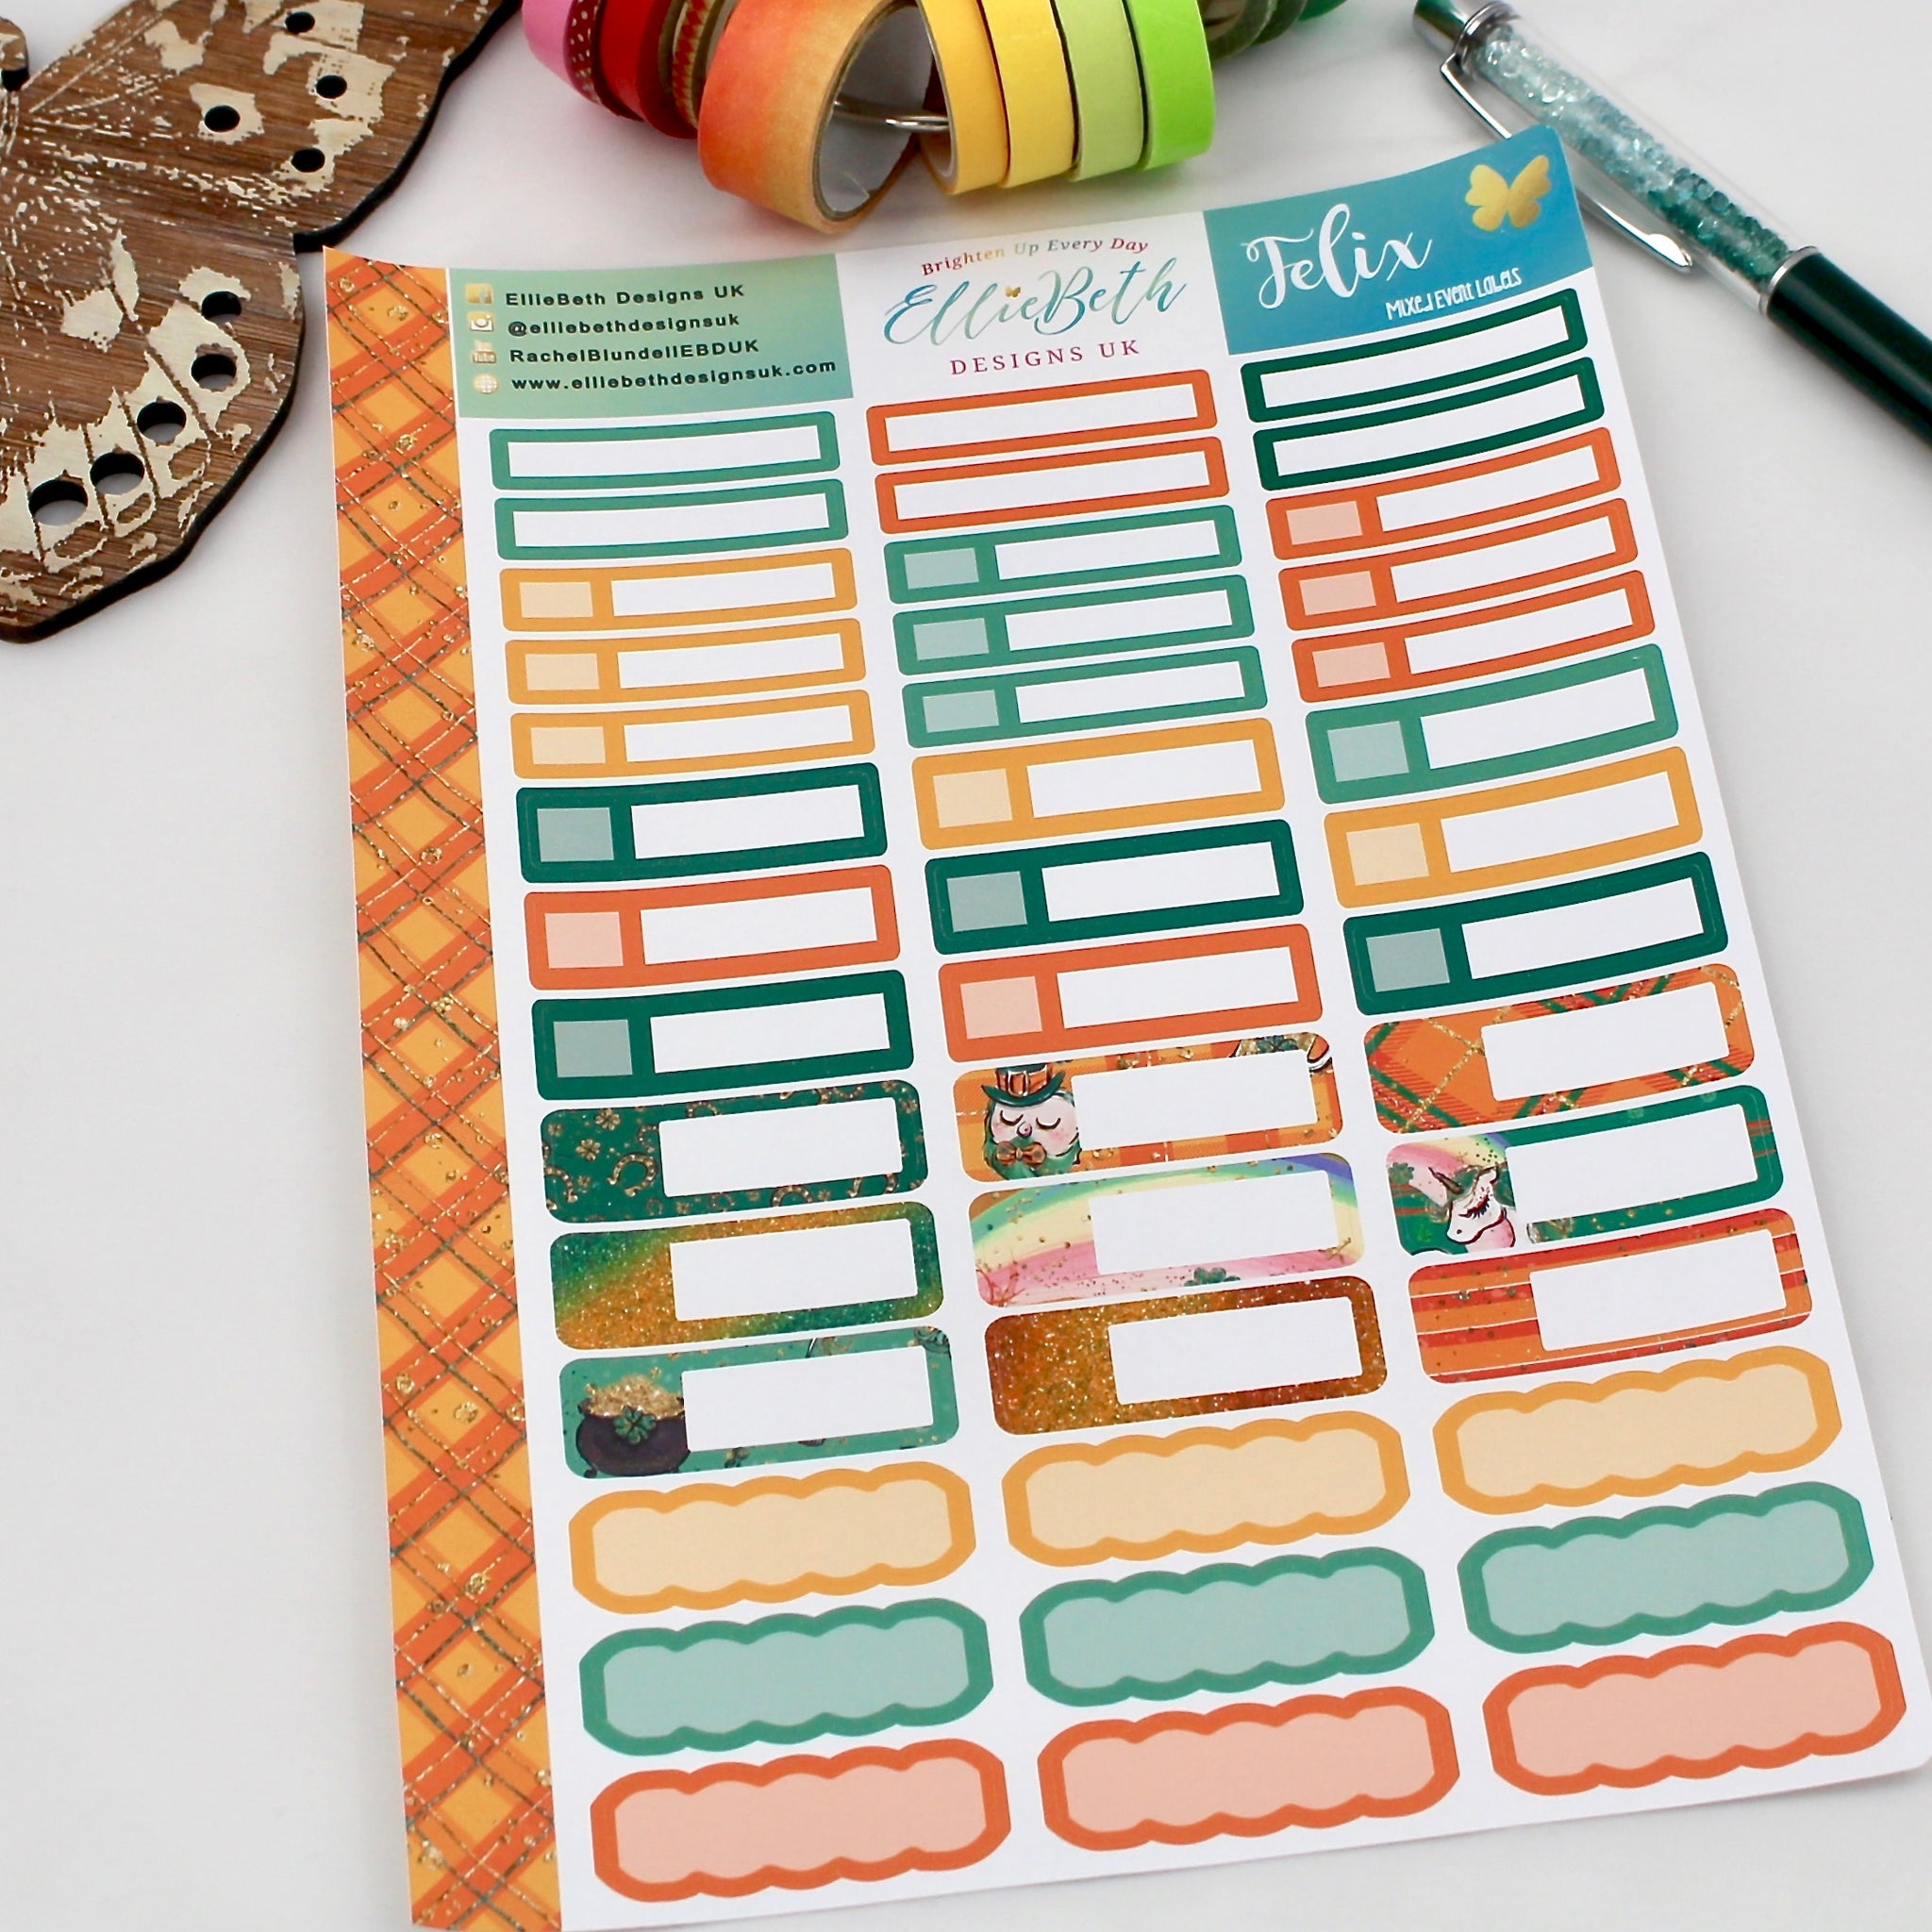 'Felix' - Mixed Event Labels -  A5 binder ready planner stickers - EllieBeth Designs UK